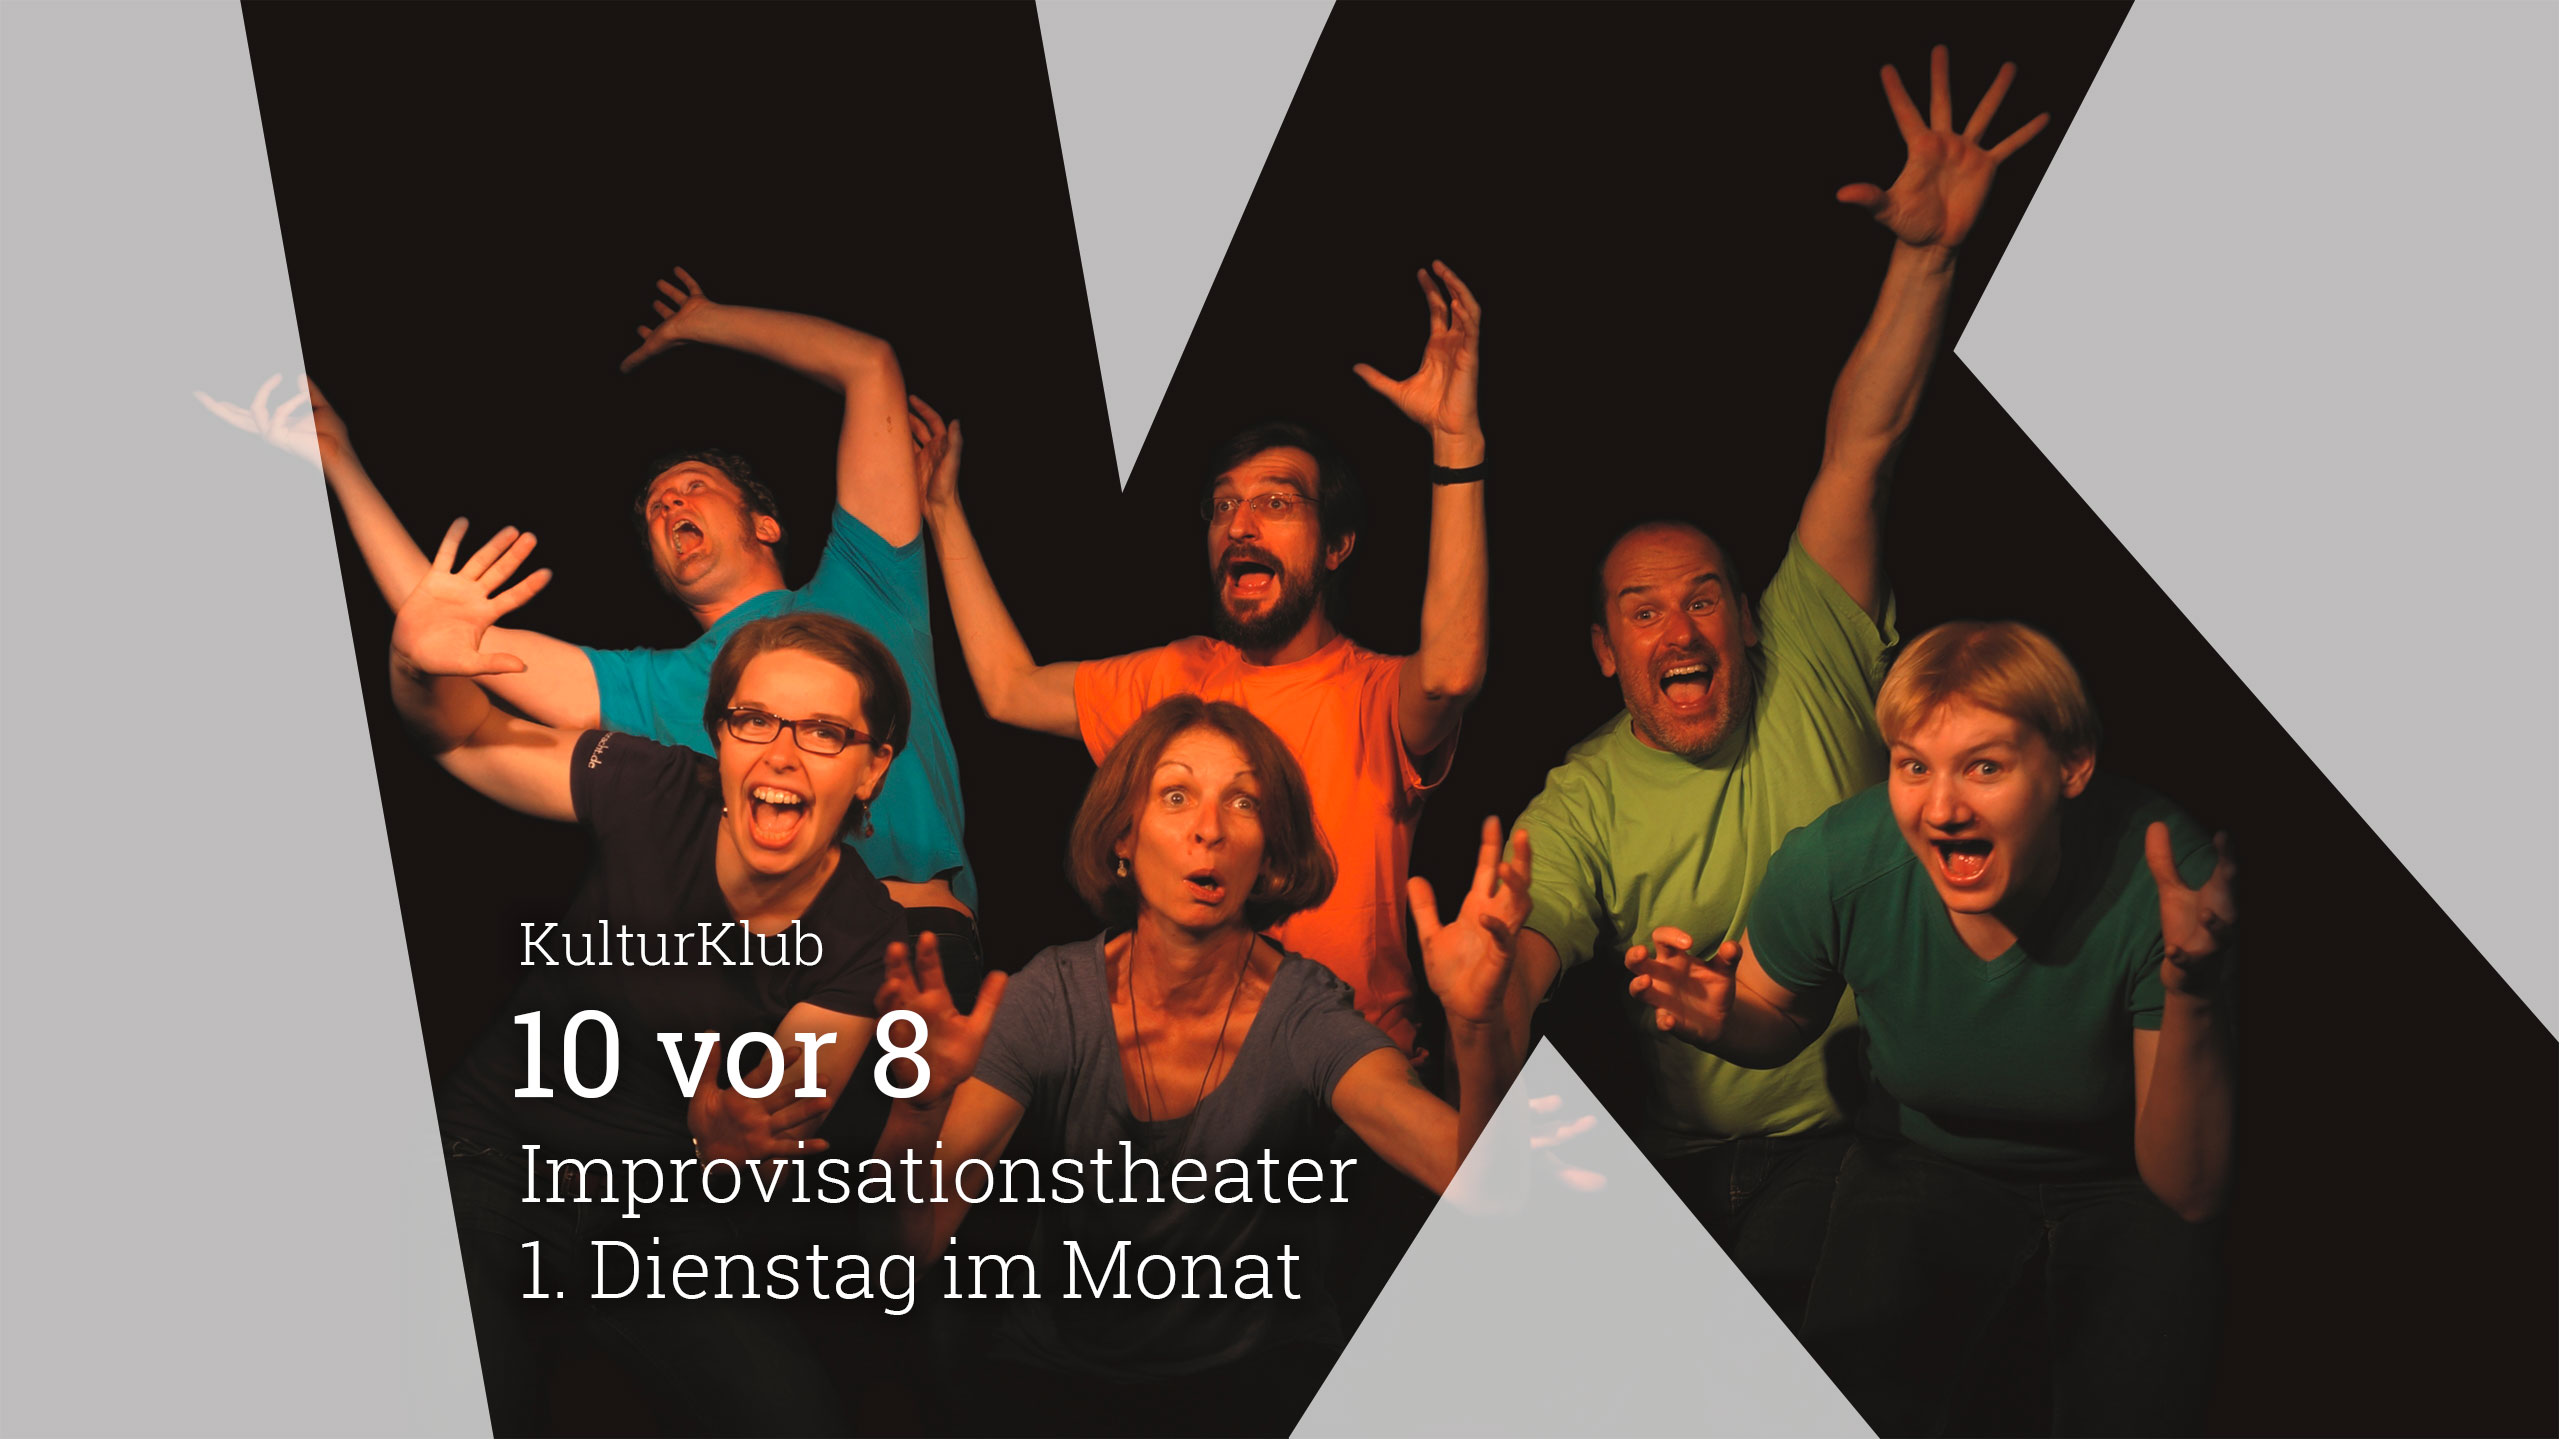 10 vor 8 Improvistationstheater